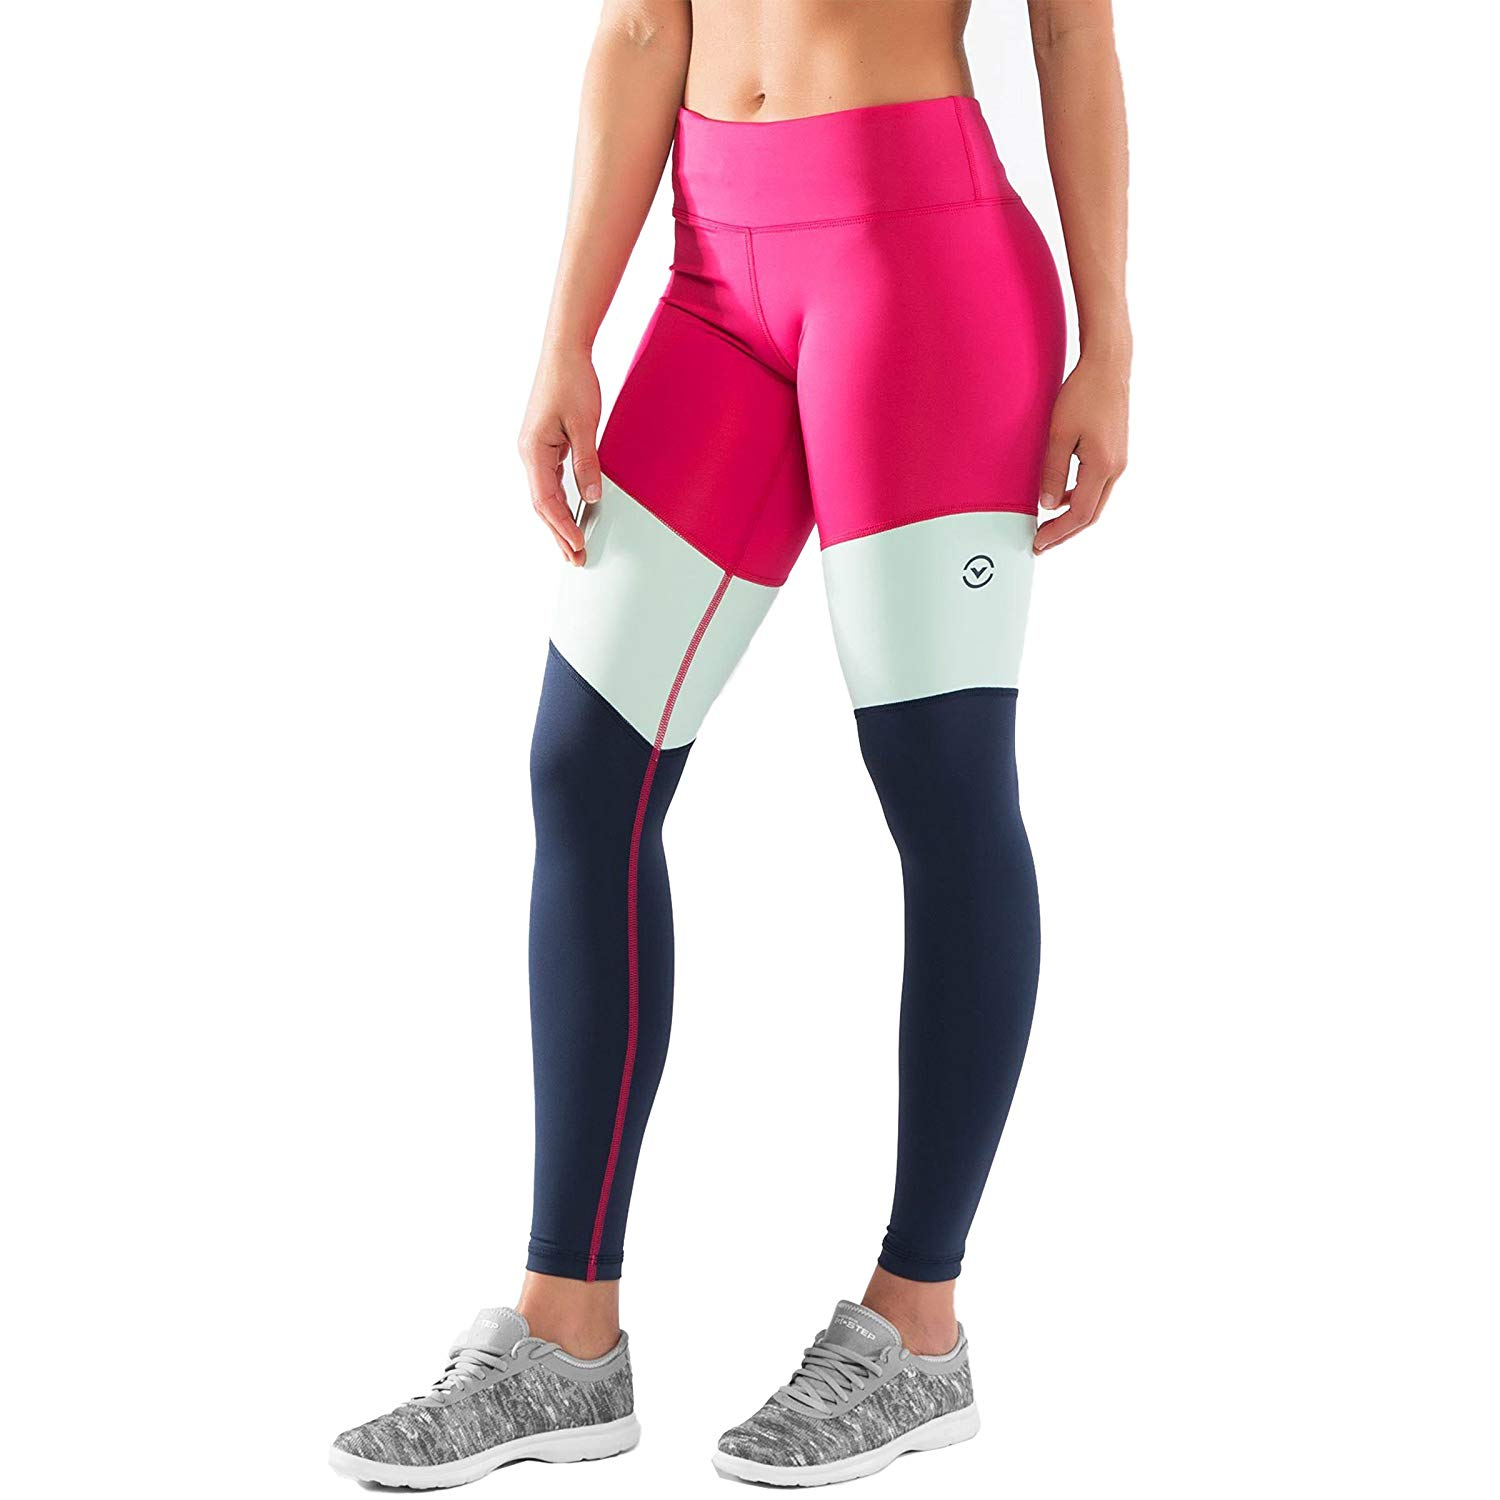 41dbfd0fa6 Get Quotations · Virus Women's Stay Cool Tri-Color Compression Pant (ECO41)  Raspberry/Navy